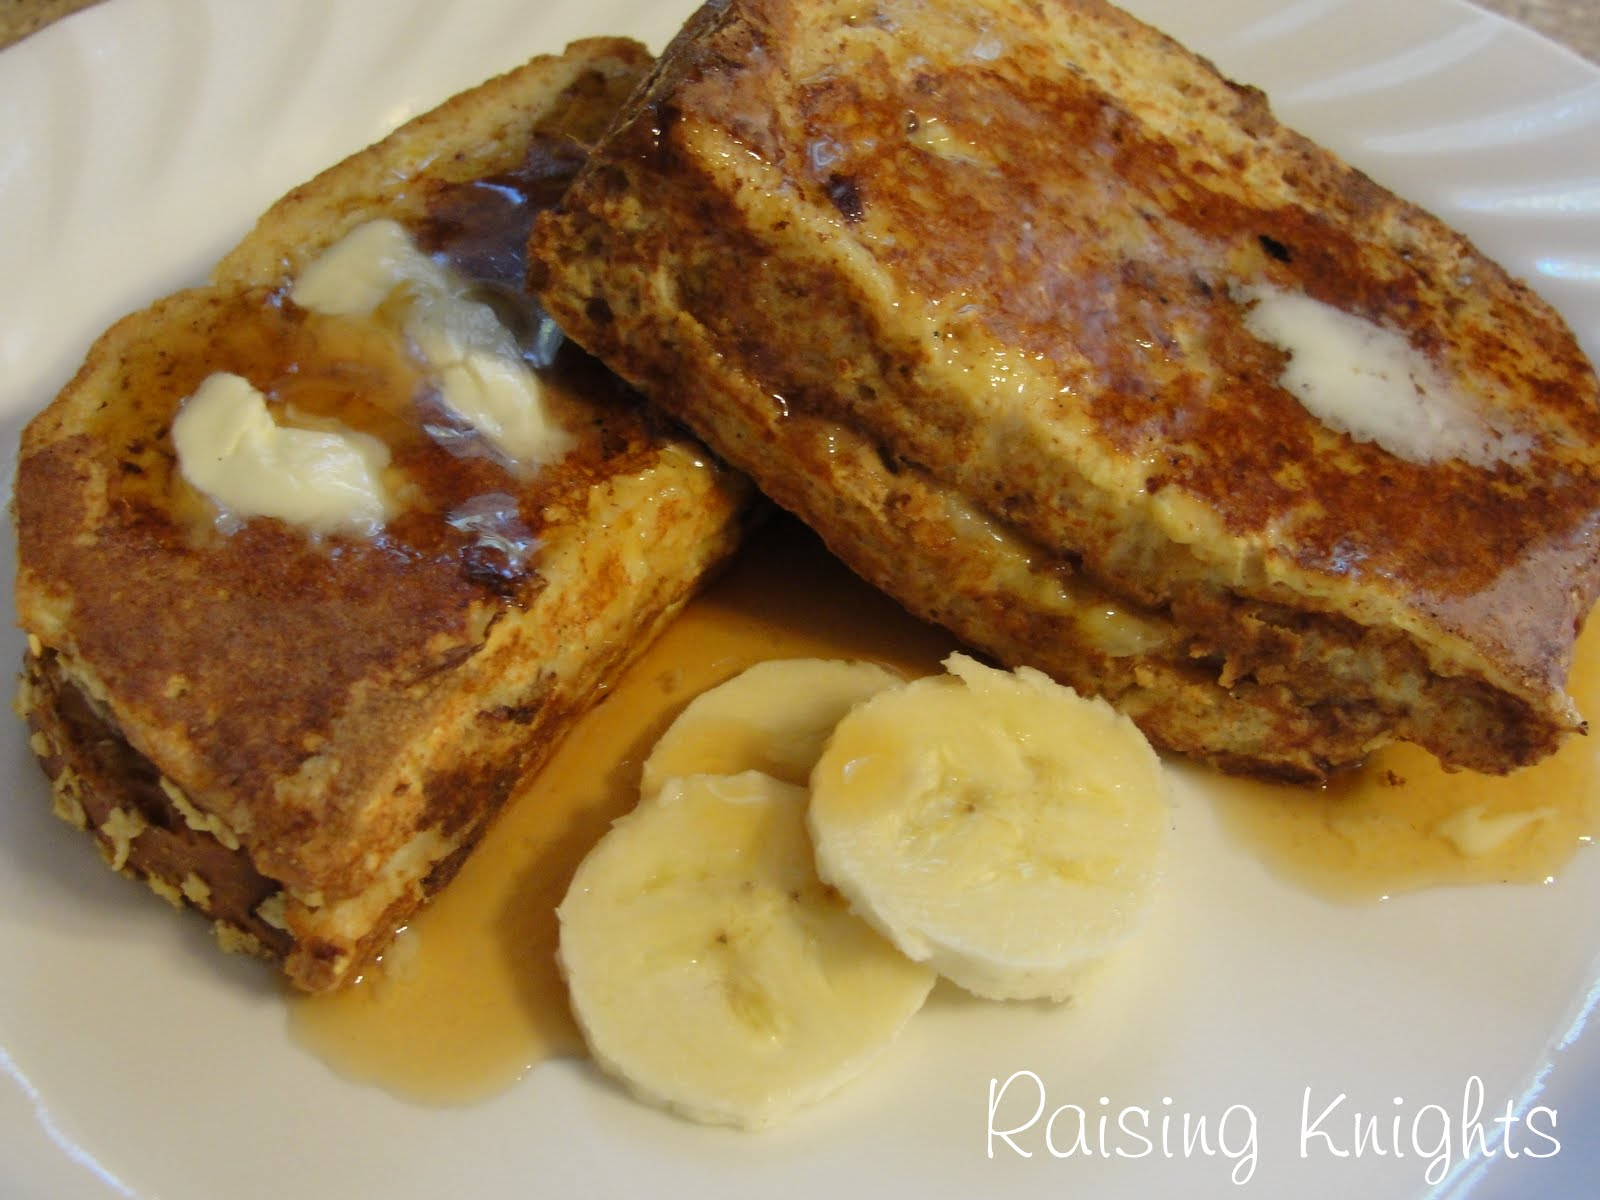 Raising Knights: Peanut Butter Banana French Toast